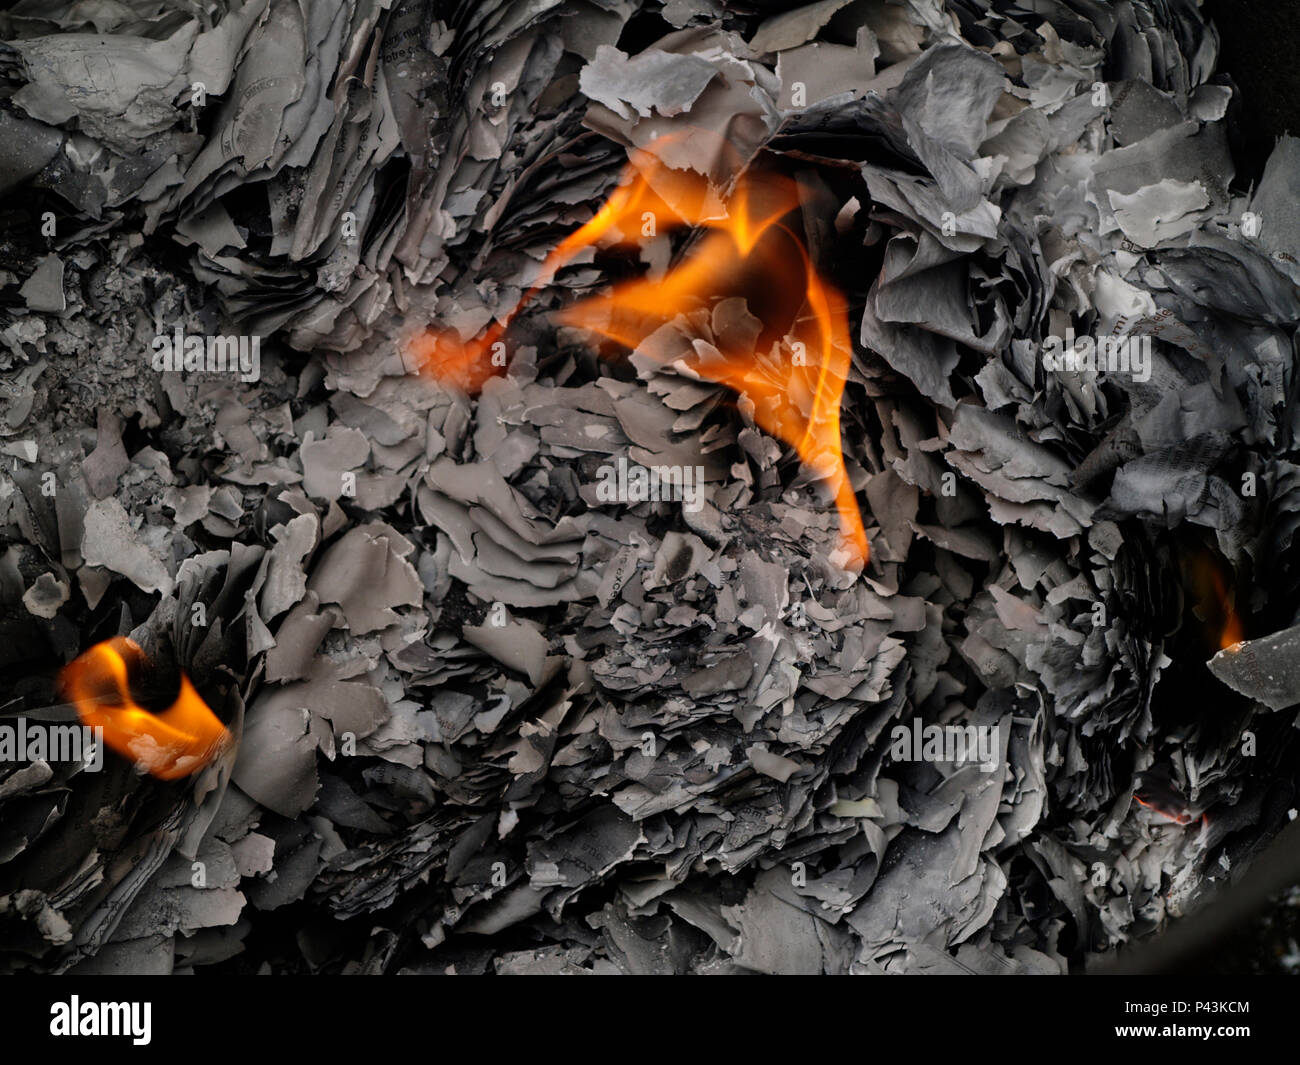 Feu De Beaumont burning papers - papers ashes - flames - fire - papiers en feu